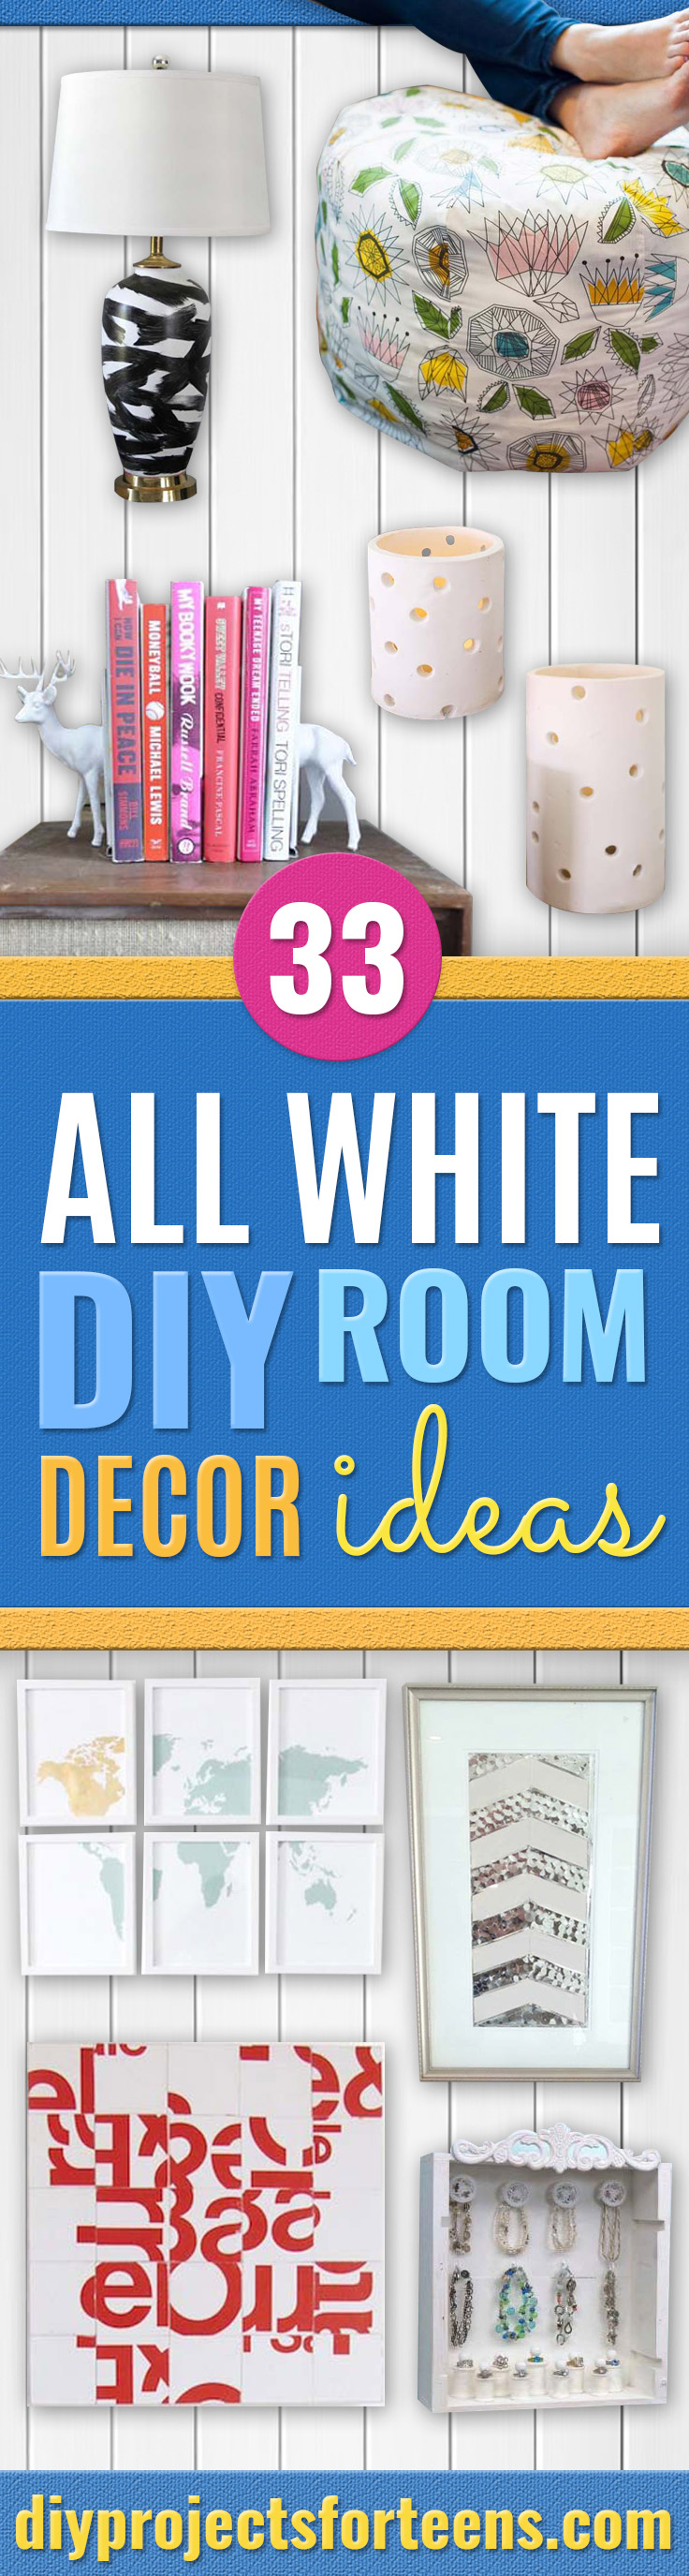 All White DIY Room Decor - Creative Home Decor Ideas for the Bedroom and Teen Rooms - Do It Yourself Crafts and White Wall Art, Bedding, Curtains, Lamps, Lighting, Rugs and Accessories - Easy Room Decoration Ideas for Girls, Teens and Tweens - Cute DIY Gifts and Projects With Step by Step Tutorials and Instructions http://diyprojectsforteens.com/diy-room-decor-white